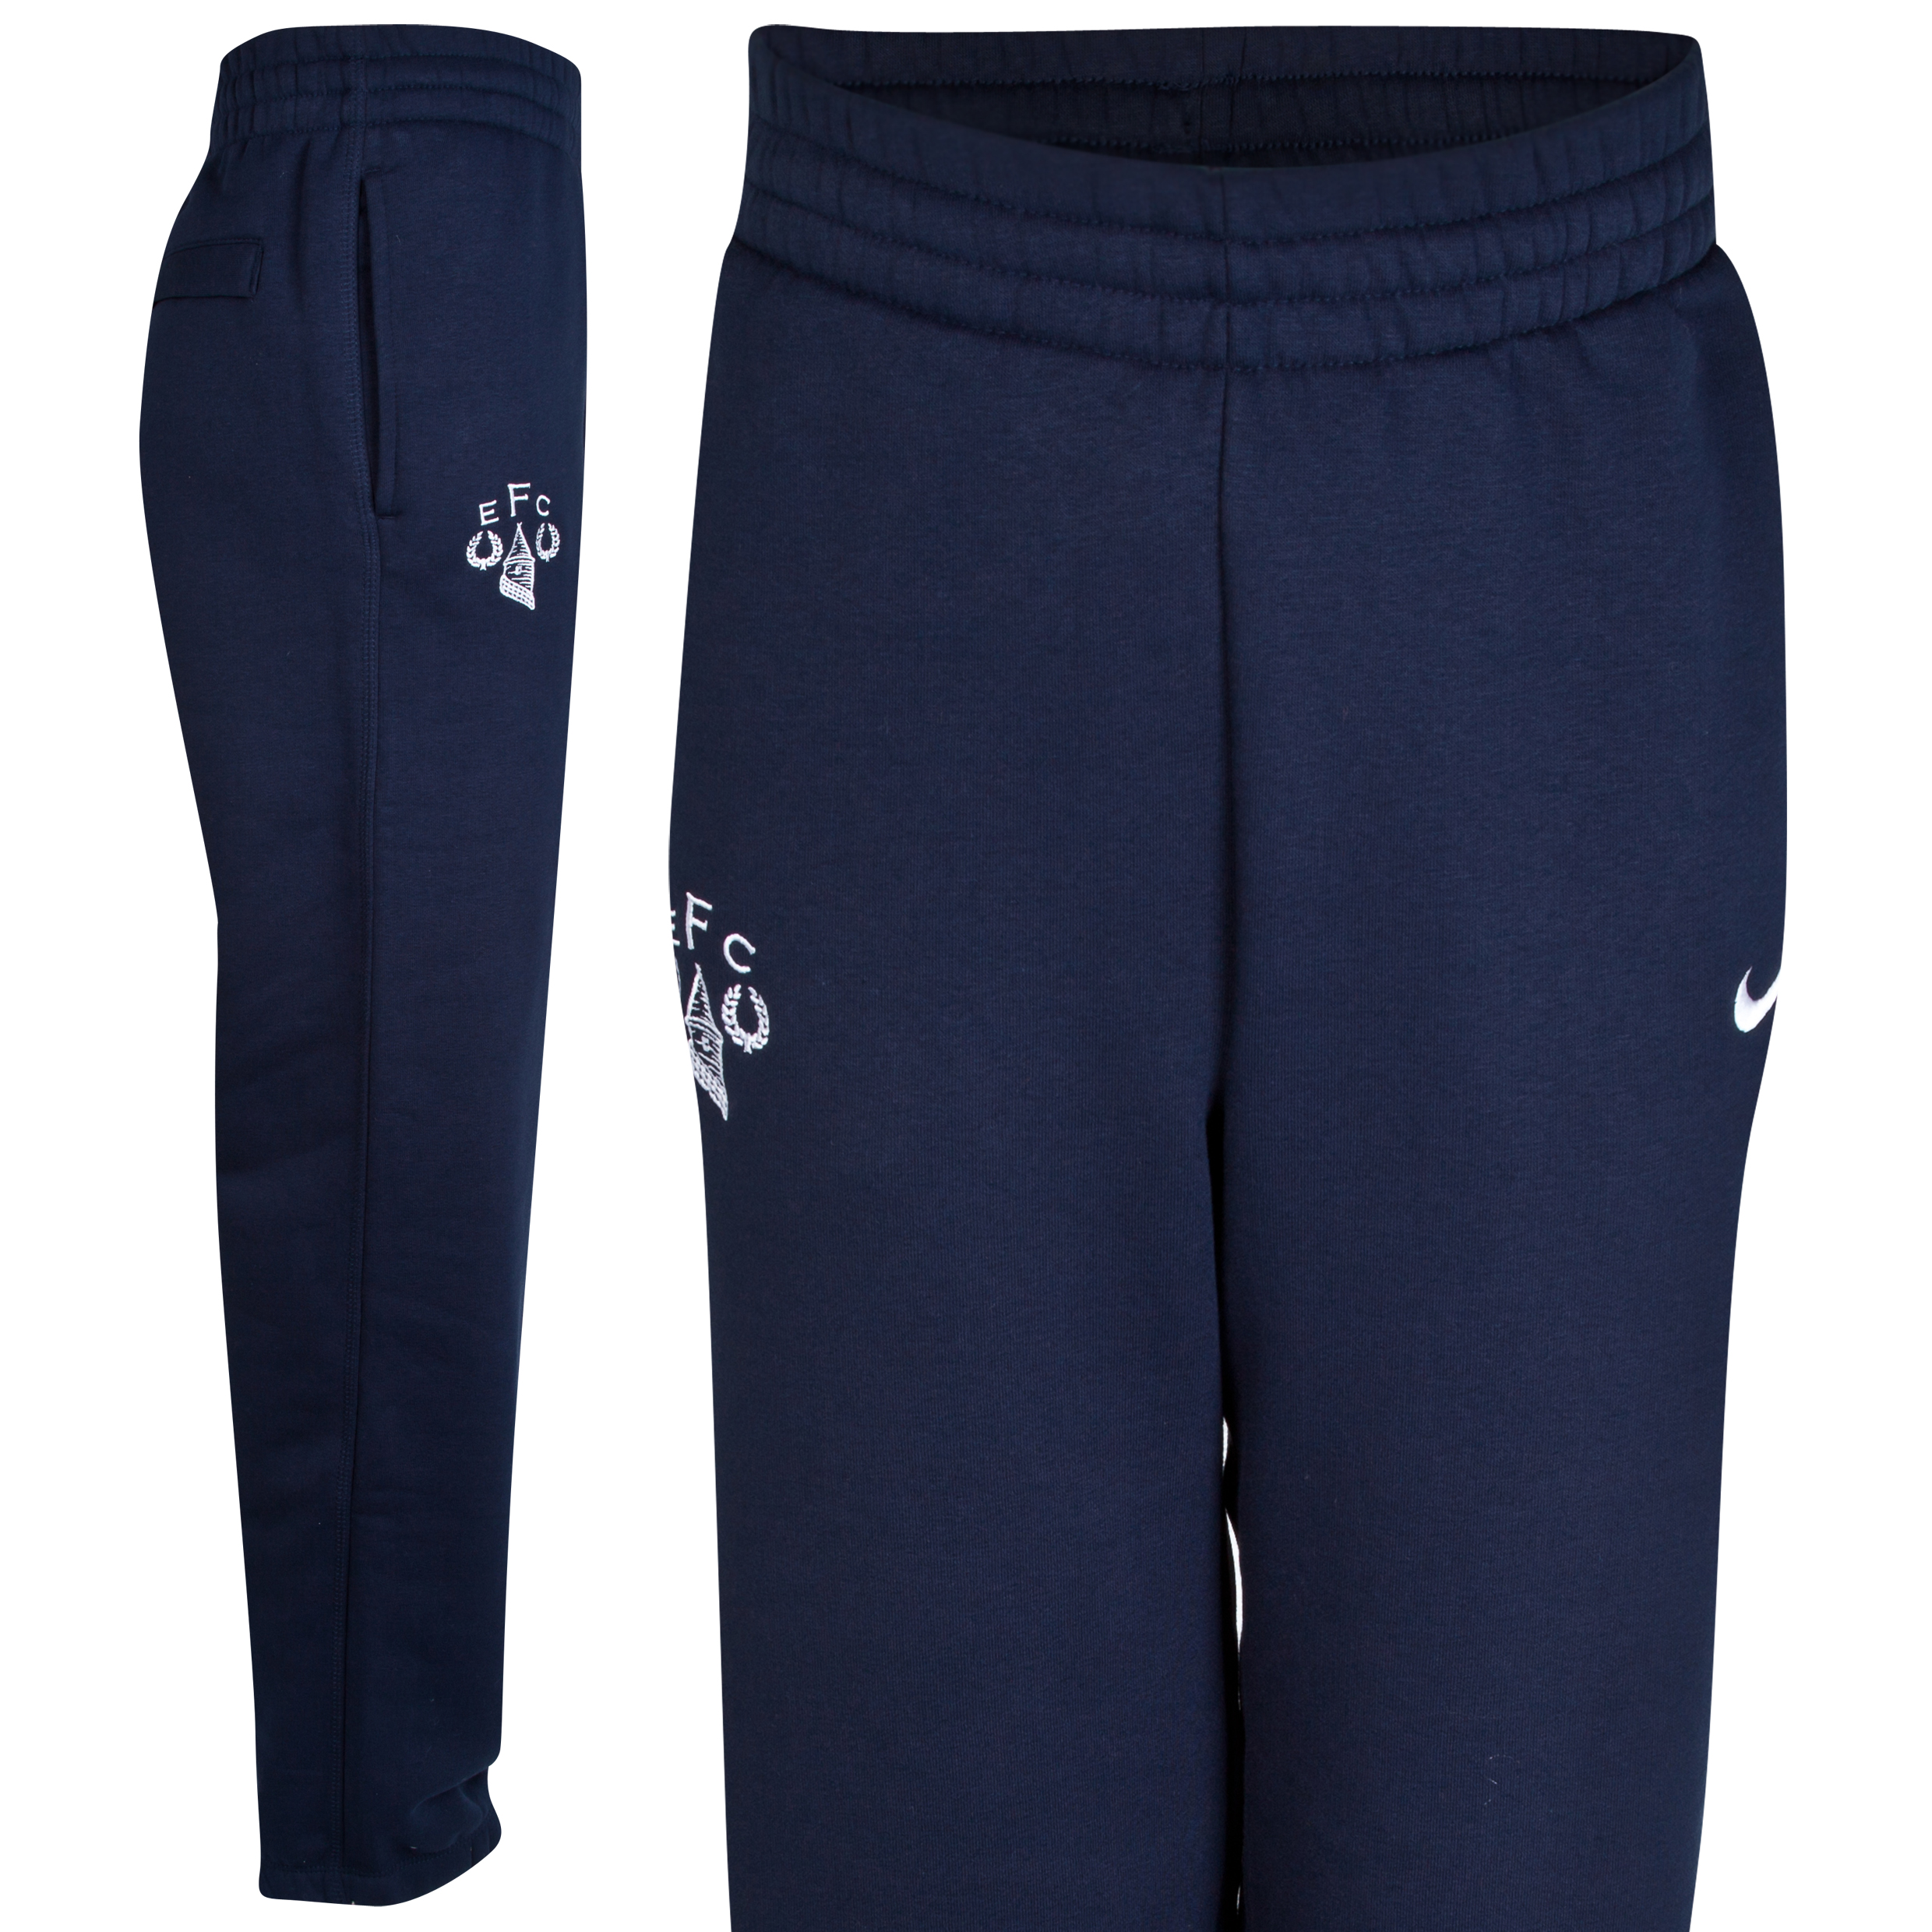 Everton Heritage Fleece Pant - Junior Navy